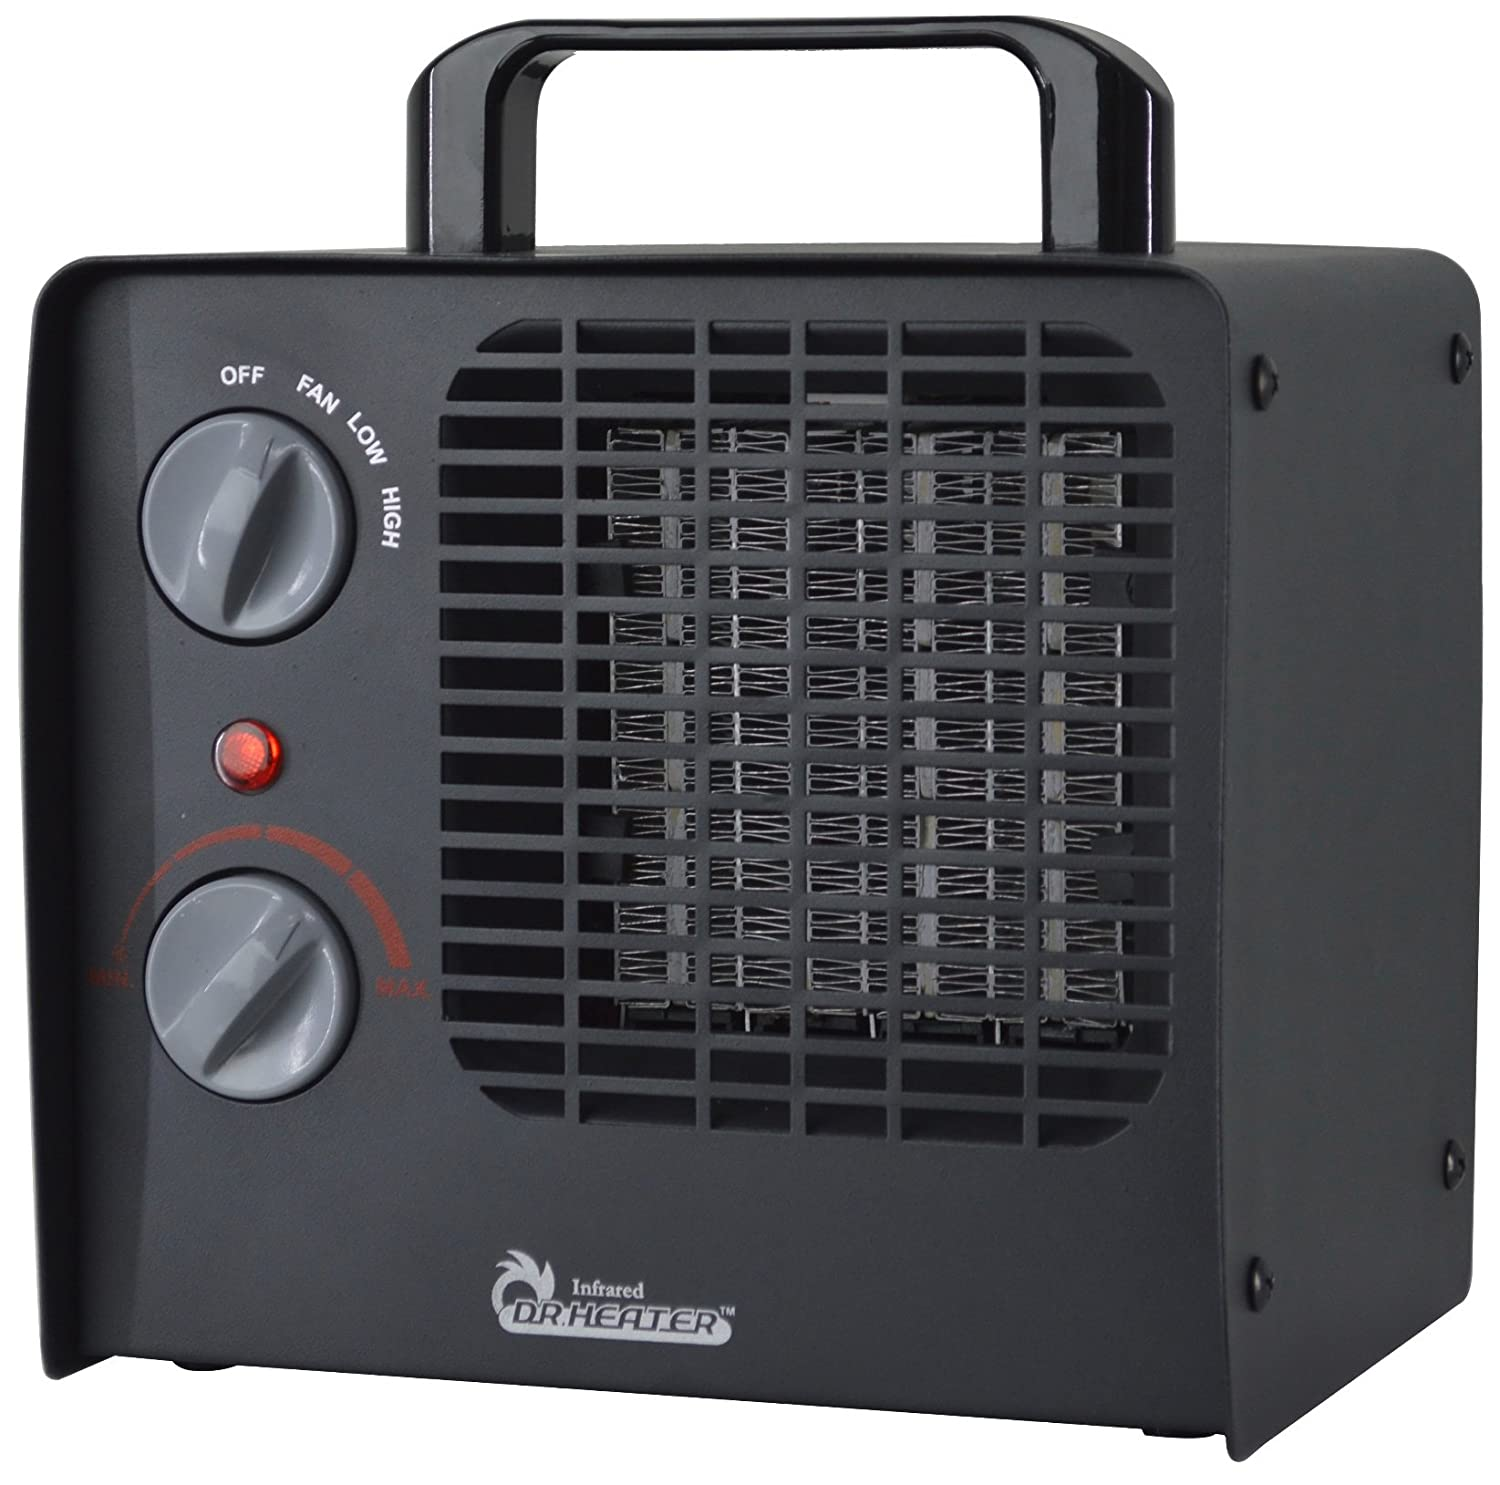 Dr. Heater DR-838 Family Red Ceramic Space Heater with Adjustable Thermostat